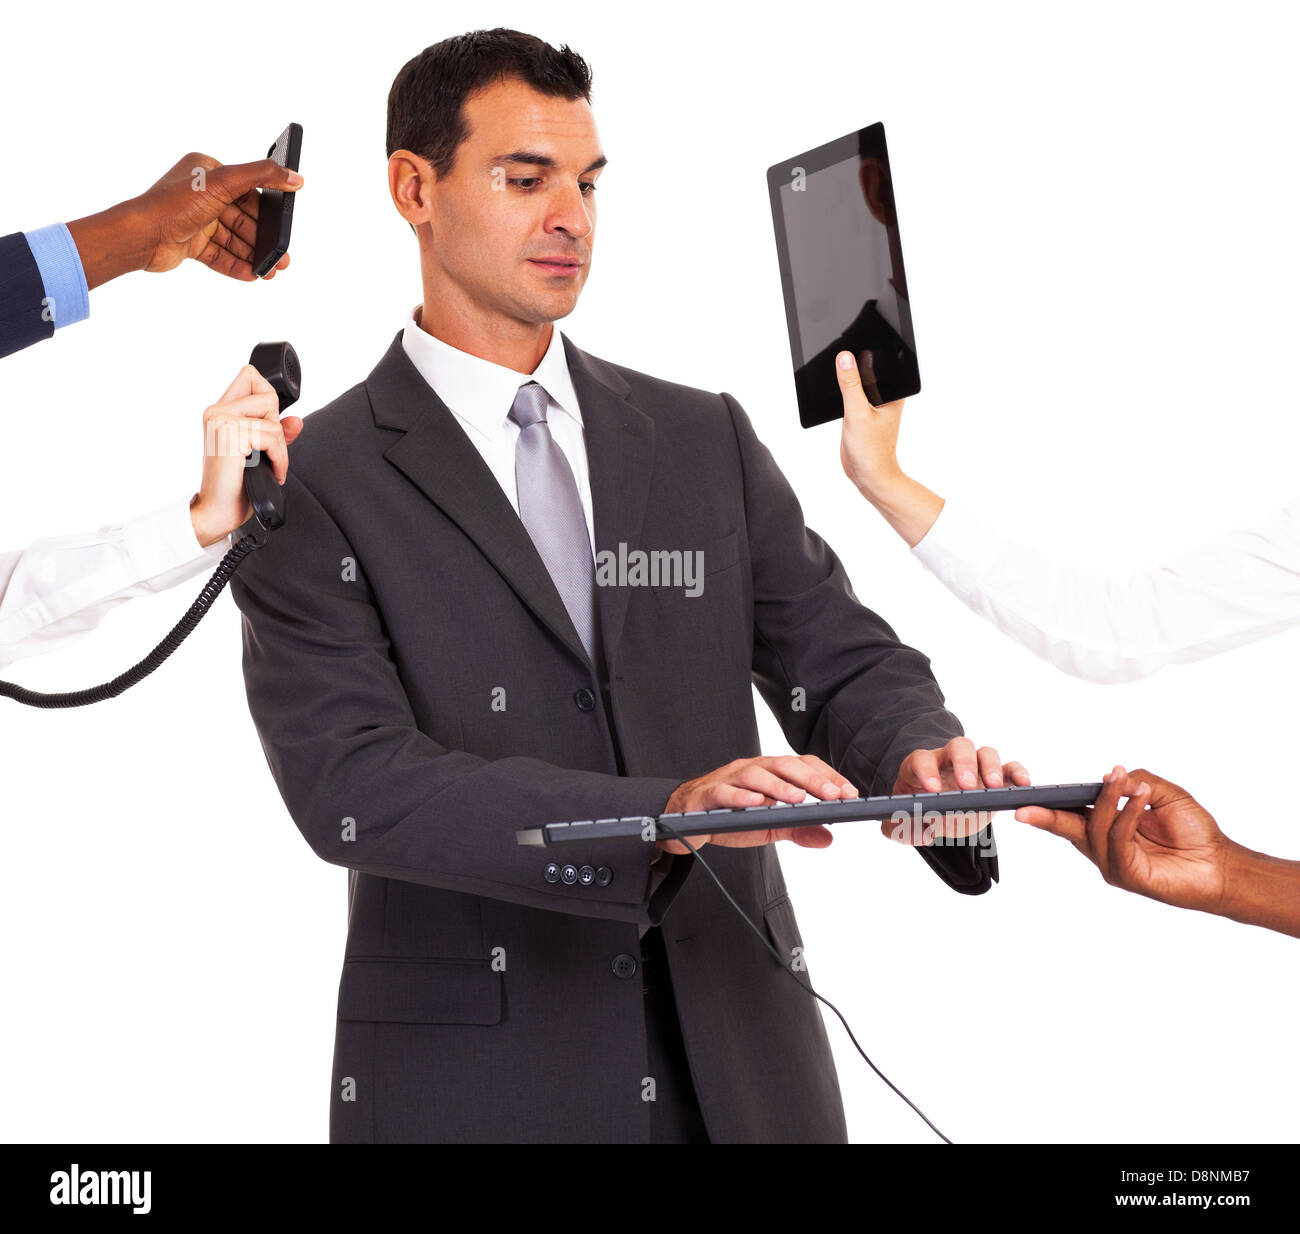 busy businessman working with multiple gadgets isolated on white - Stock Image